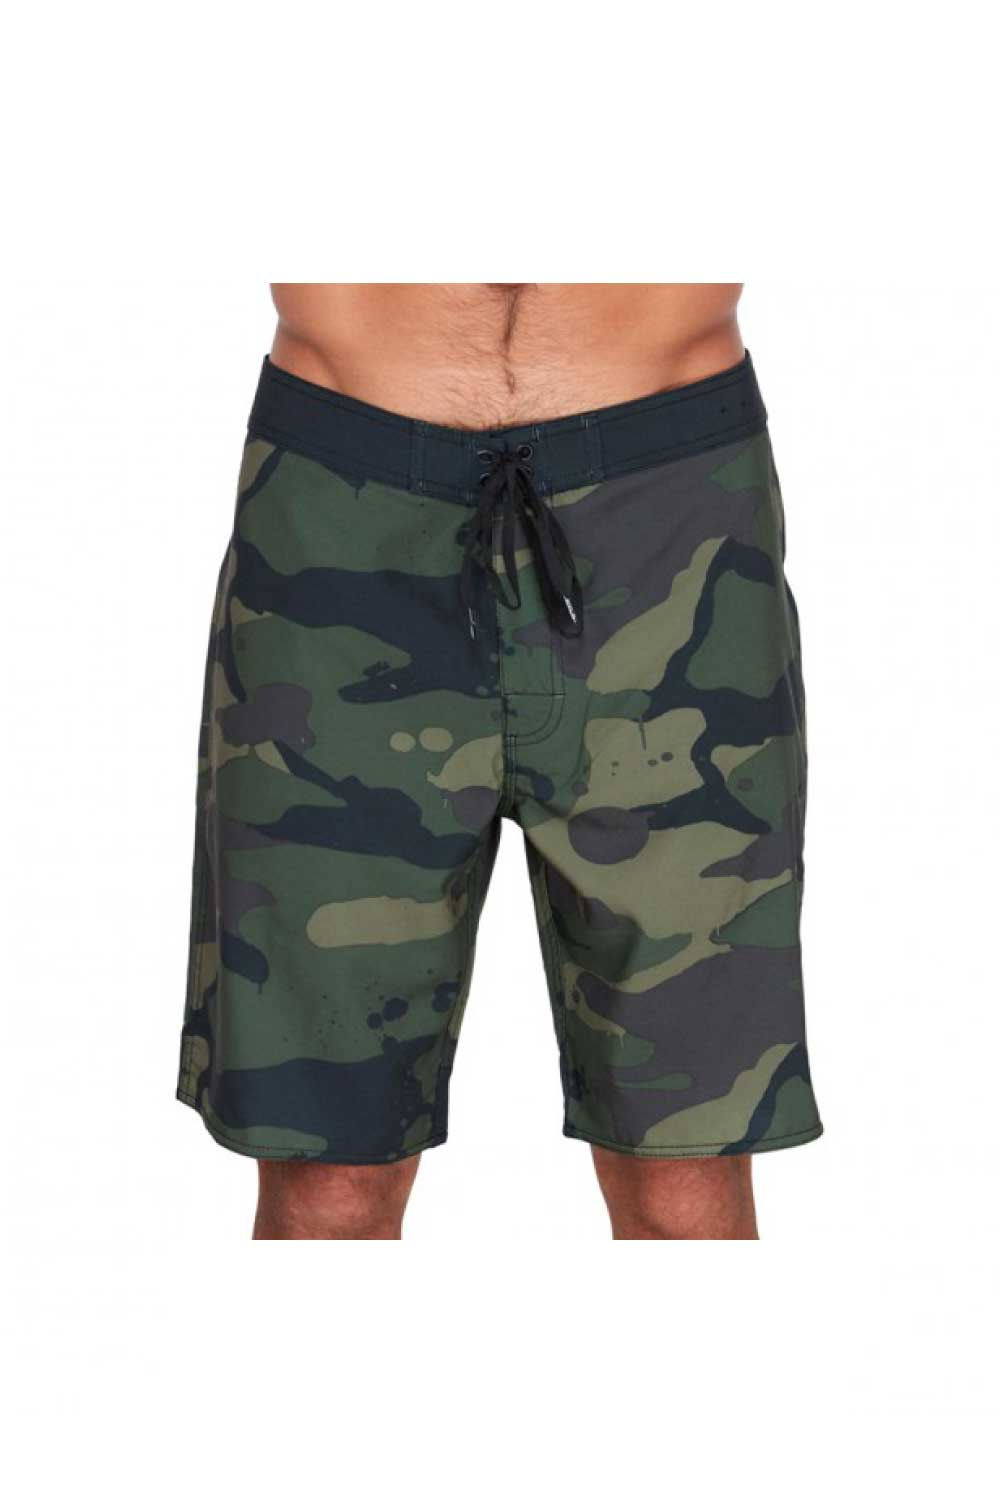 "RVCA VA Warp 19"" Mens Trunk Boardshorts"